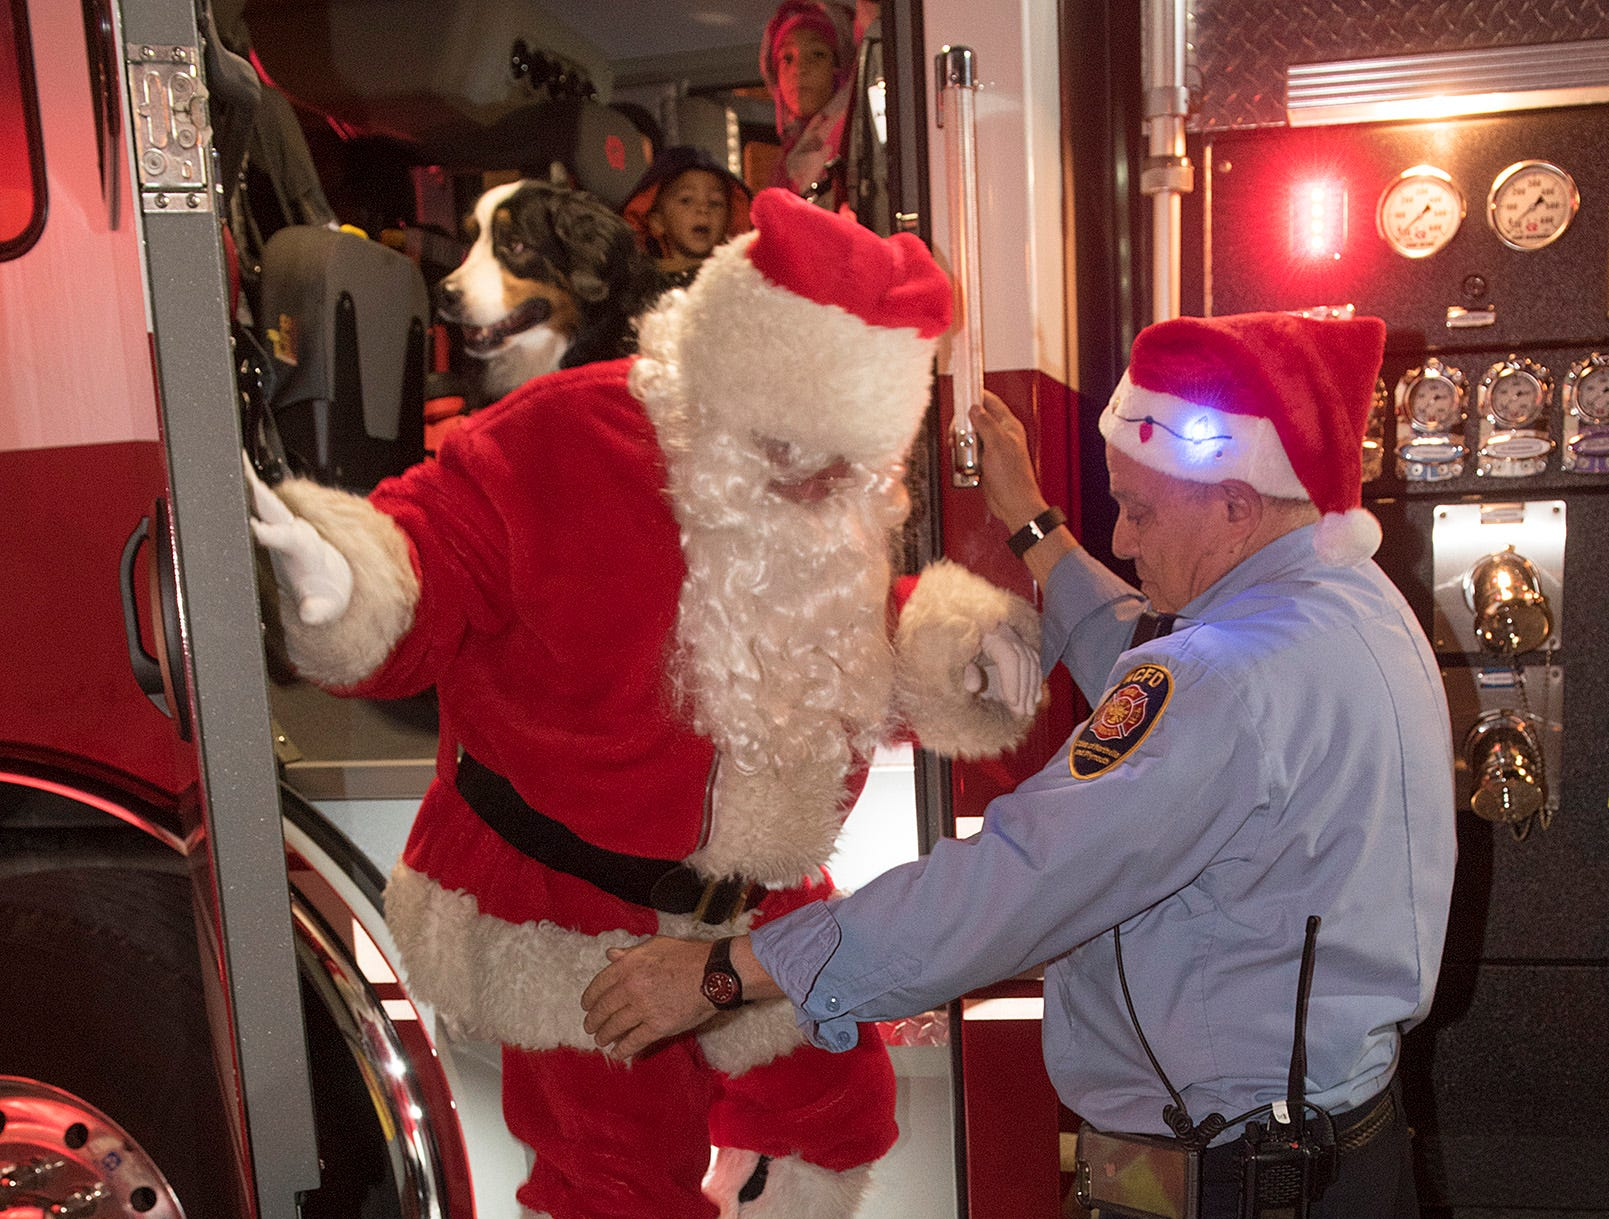 Santa Claus had to ditch the sleigh and reindeer because there was no snow. That jolly old elf, Captain Jim Davison, was happy to give Santa a lift.